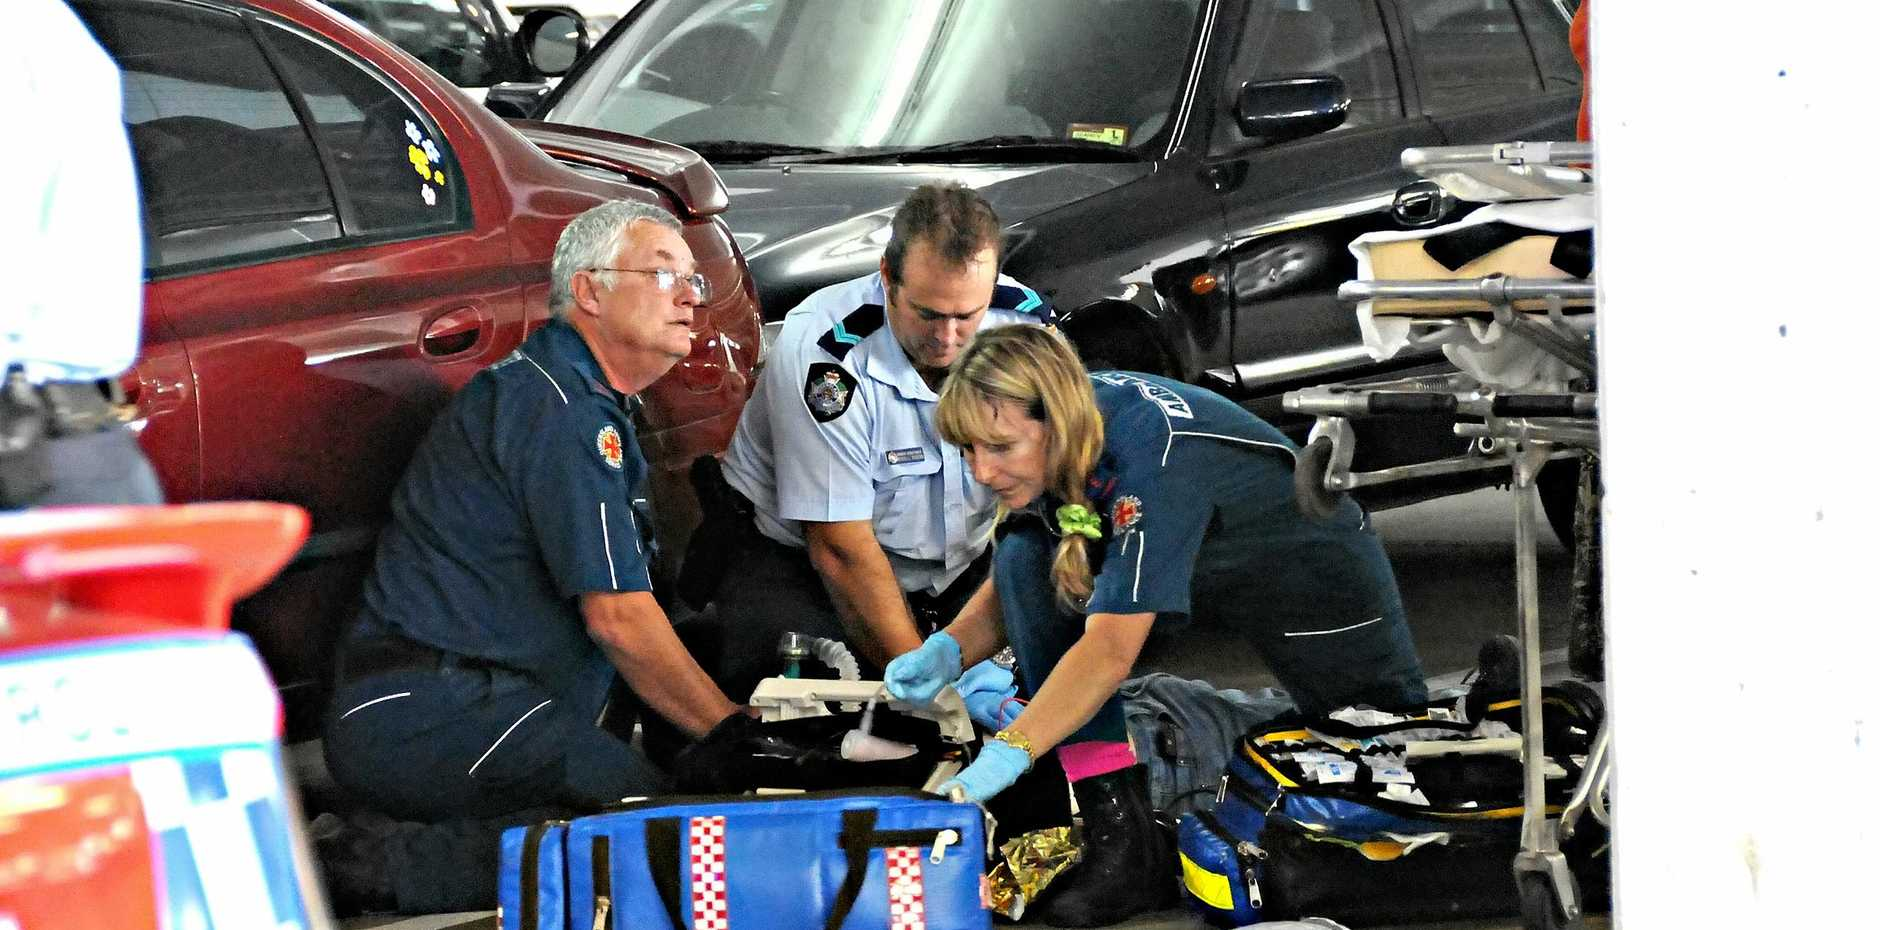 TRAGIC END: Police and paramedics work on the Jaxson Bradey, the victim of a fatal stabbing at Goldfields Plaza in 2009.